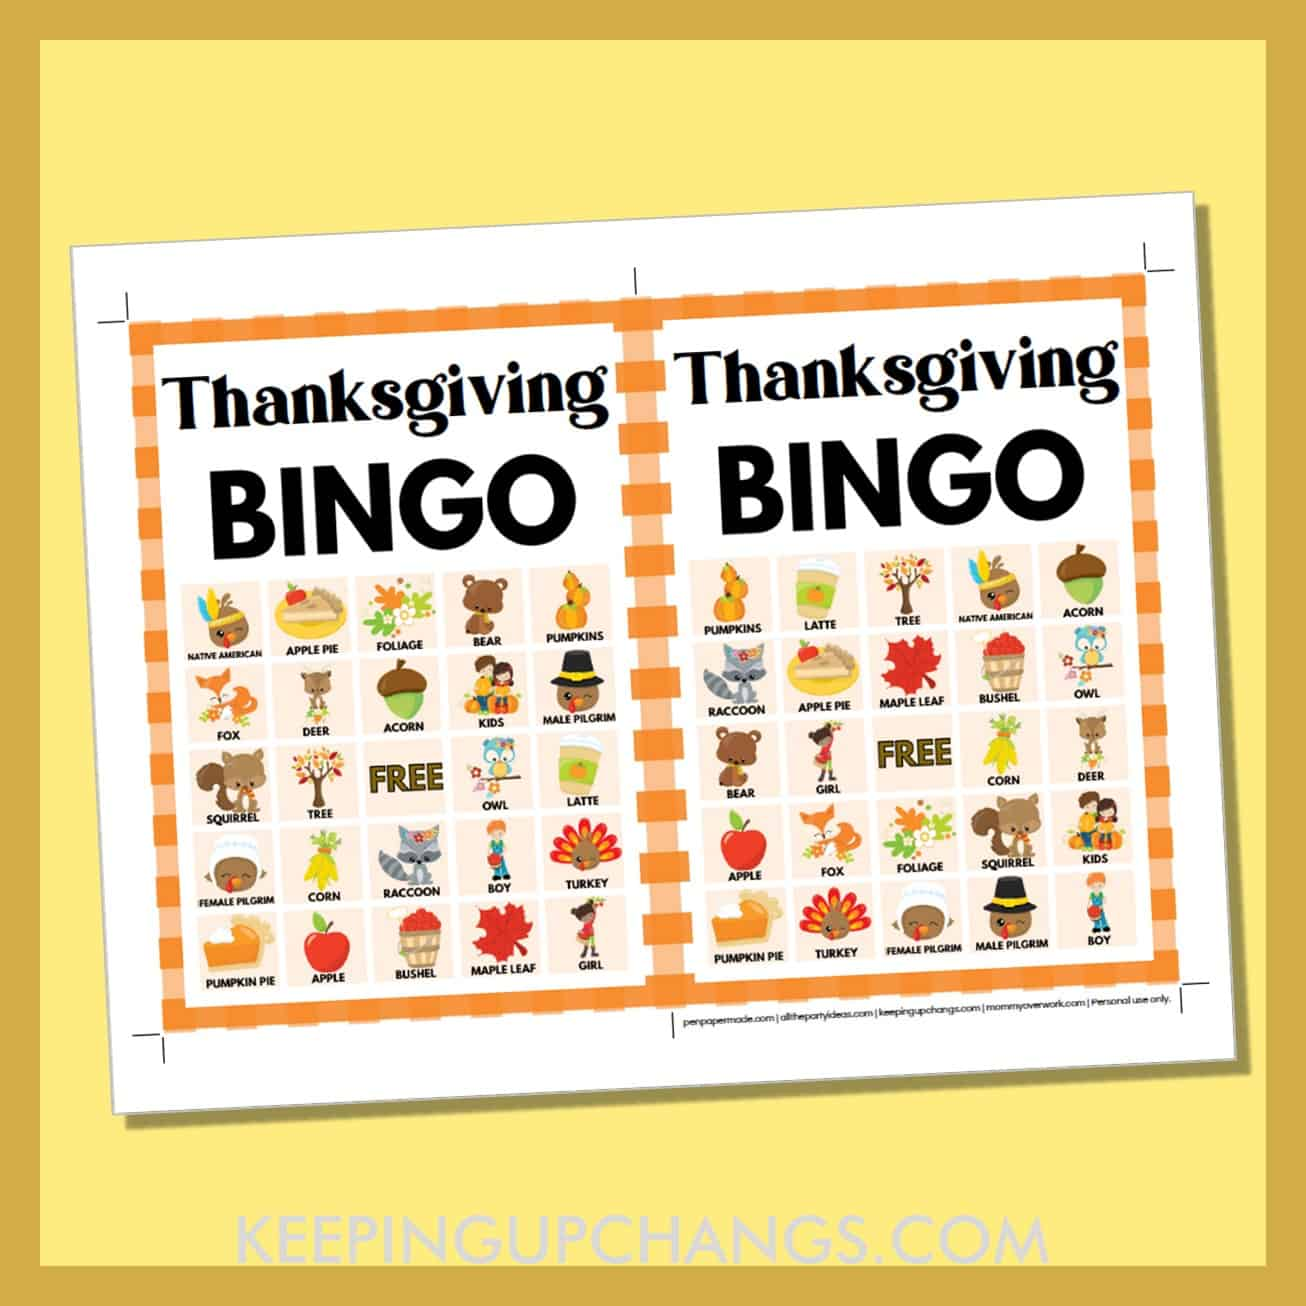 free fall thanksgiving bingo card 5x5 5x7 game boards with images and text words.